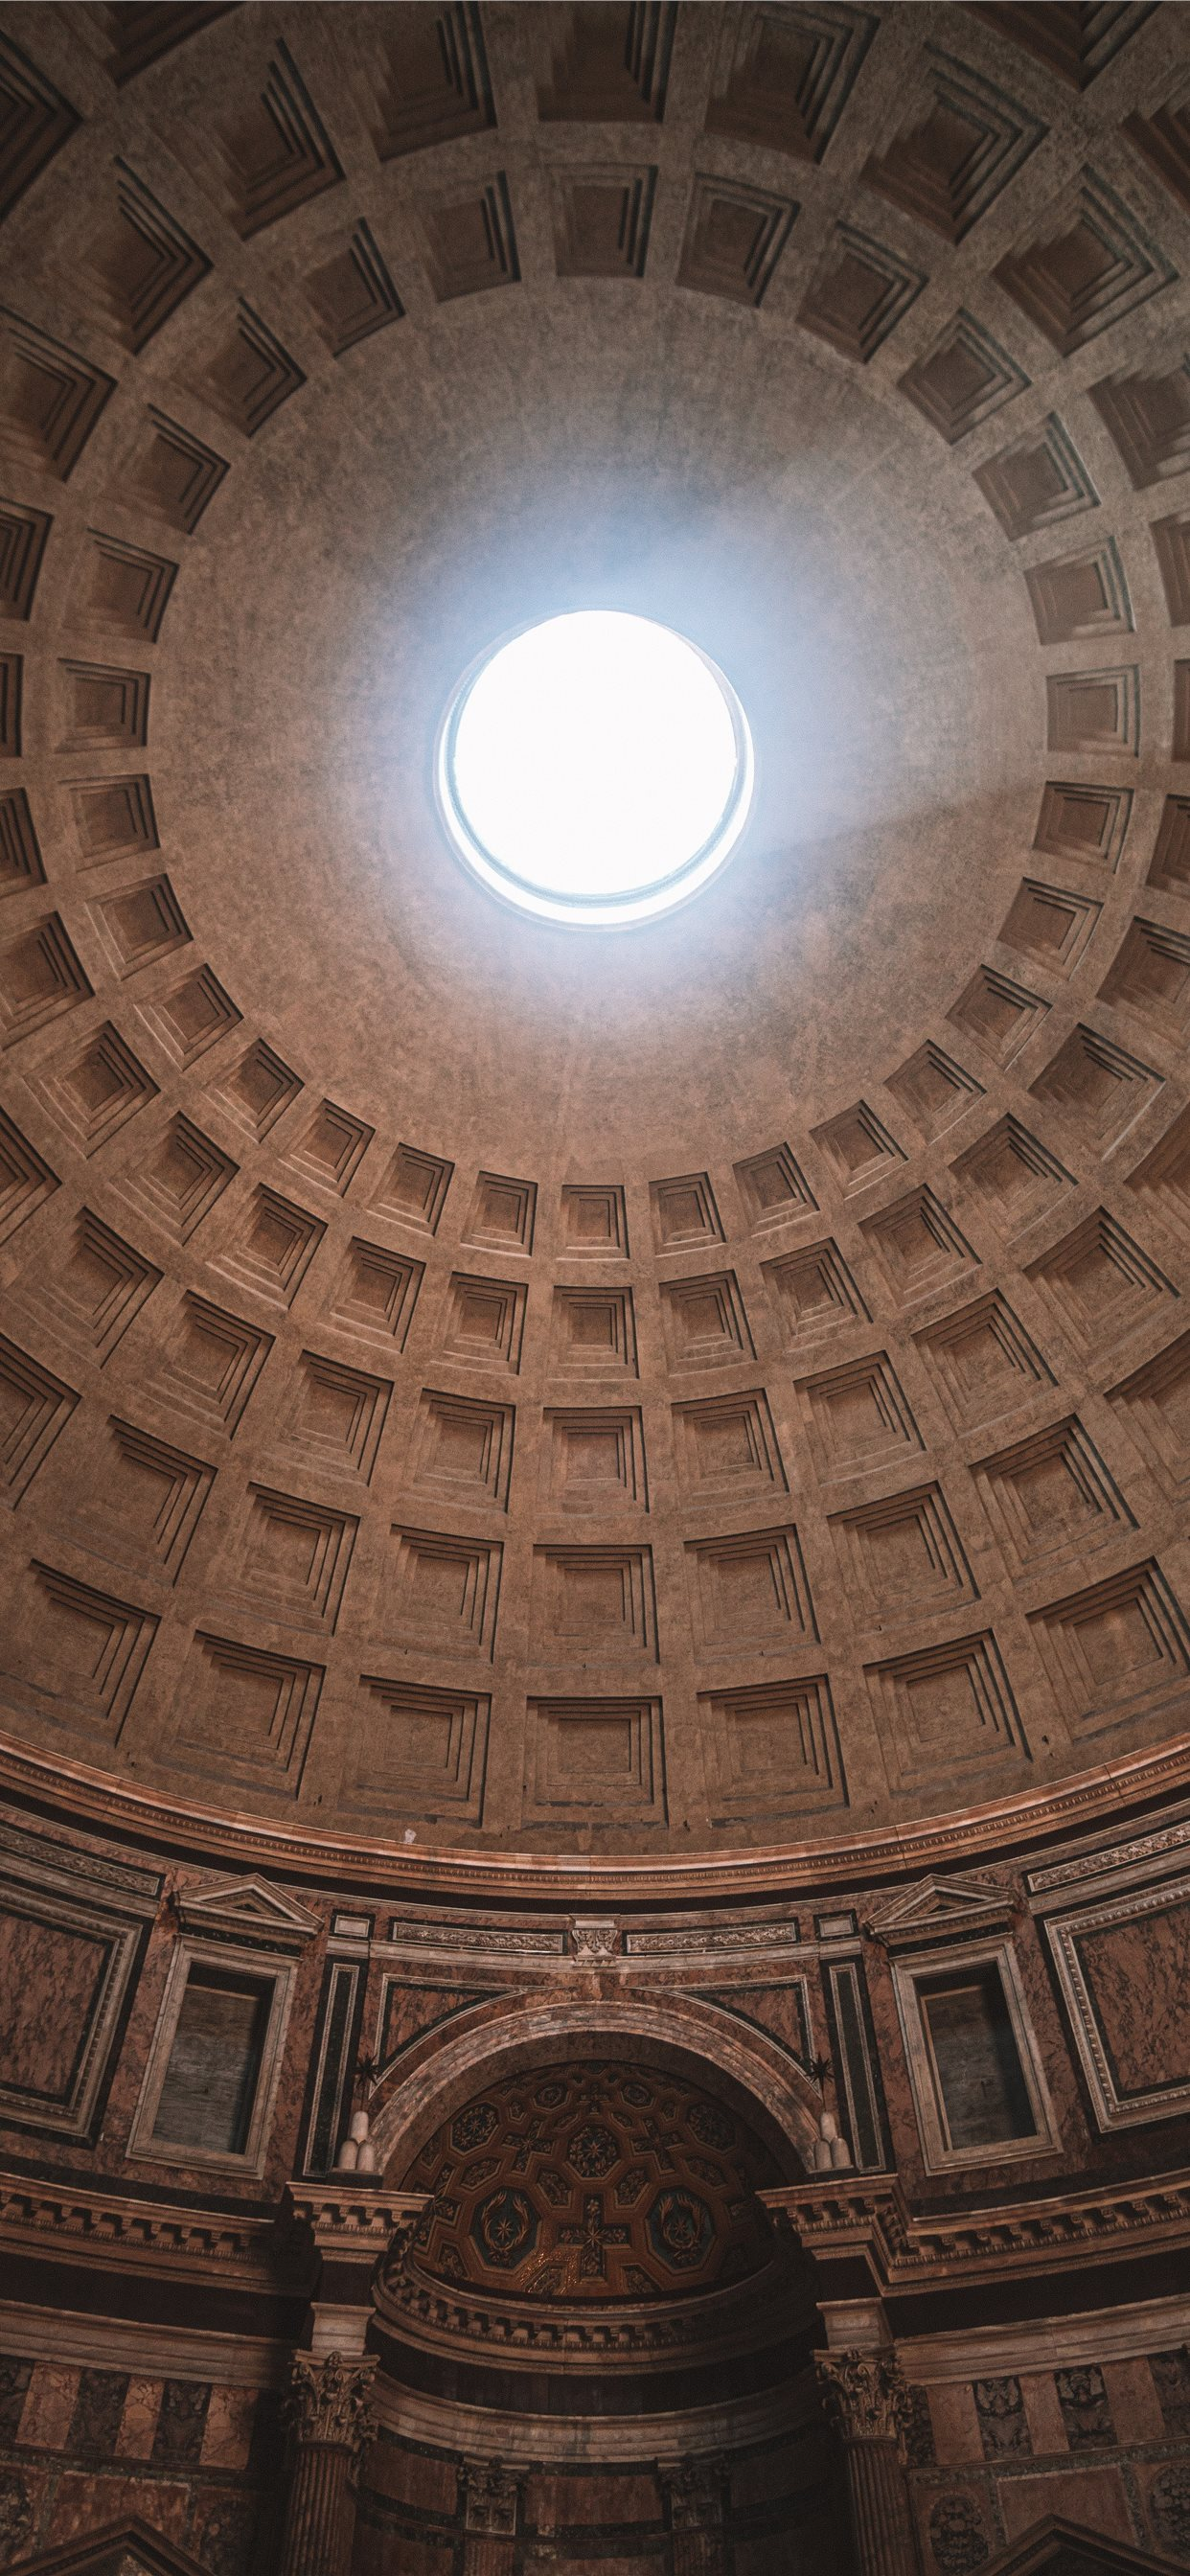 Inside Pantheon Temple In Rome Italy Iphone 11 Wallpapers Free Download